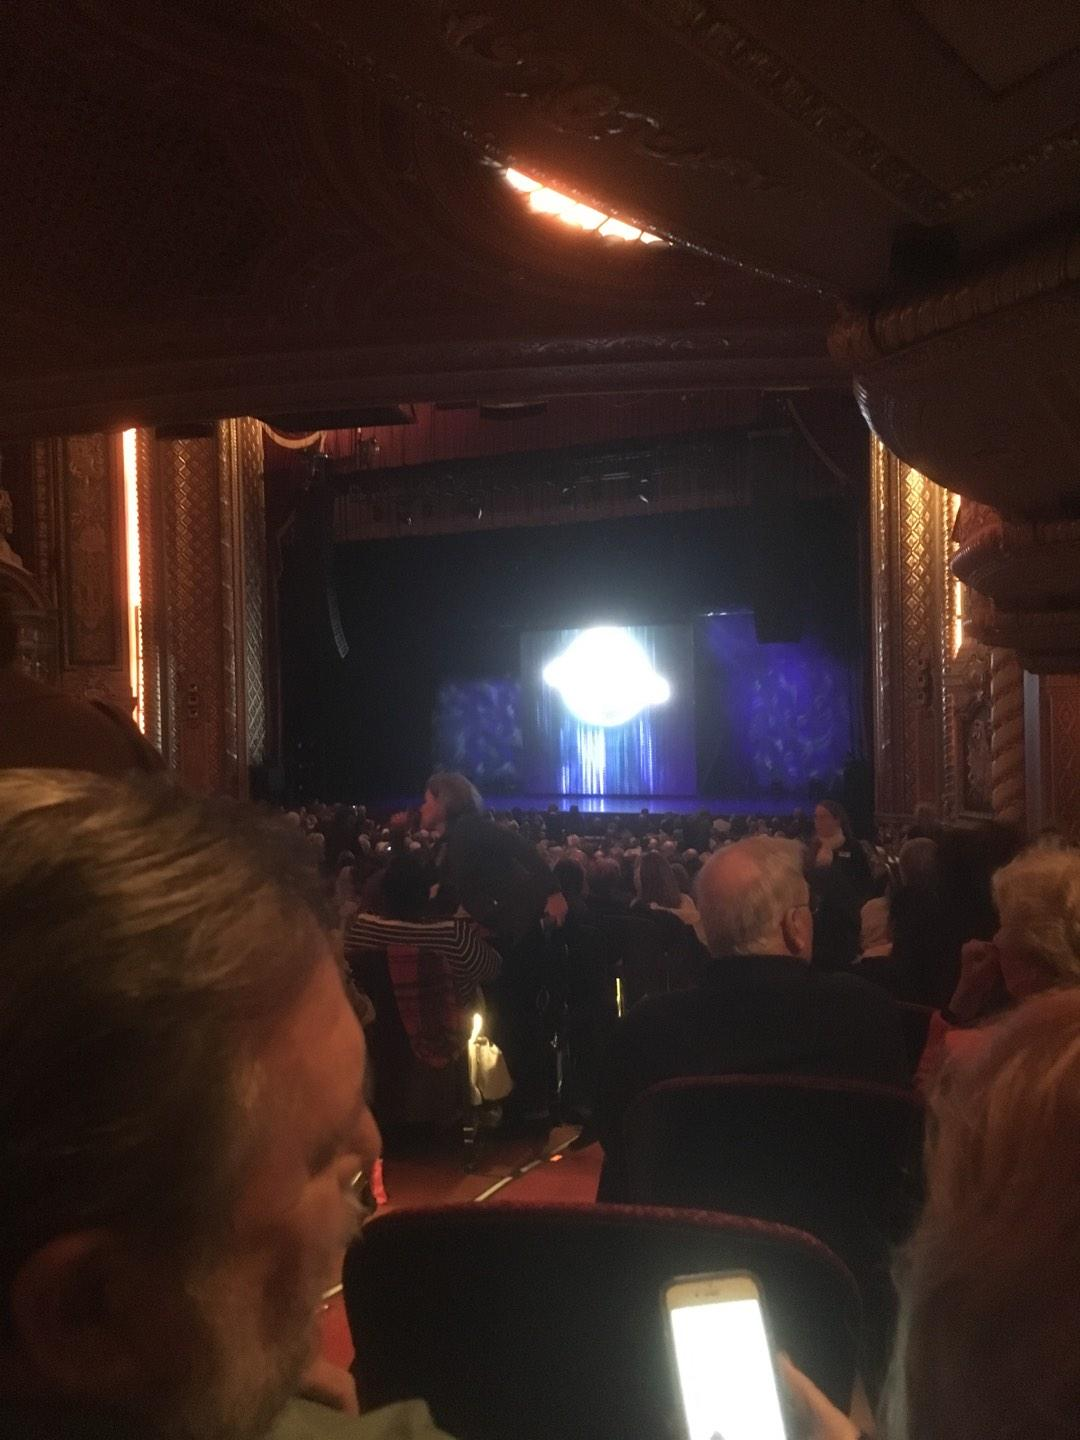 Wang Theatre Section Orchr Row Ddd Seat 32